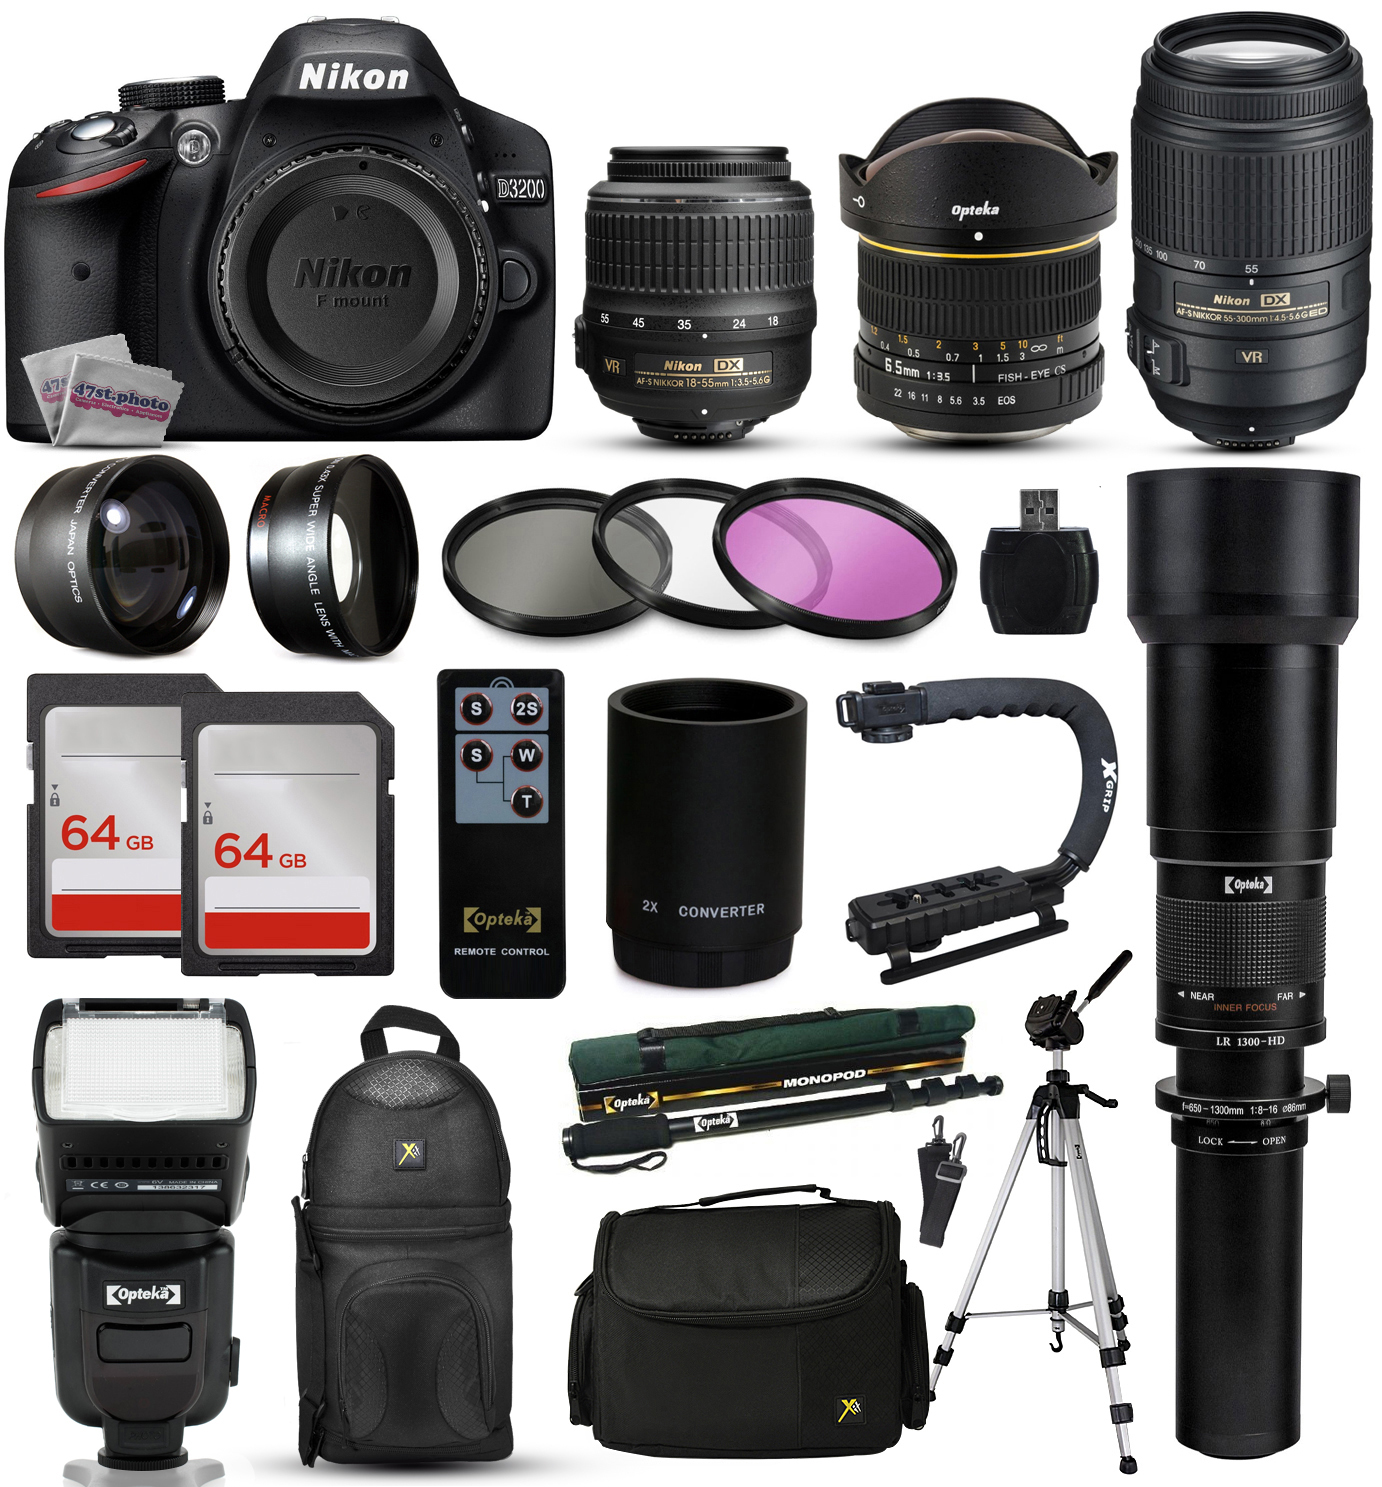 "Nikon D3200 DSLR Digital Camera + 18-55mm VR + 6.5mm Fisheye + 55-300mm VR + 650-2600mm Lens + Filters + 128GB Memory + Action Stabilizer + i-TTL Autofocus Flash + Backpack + Case + 70"" Tripod"